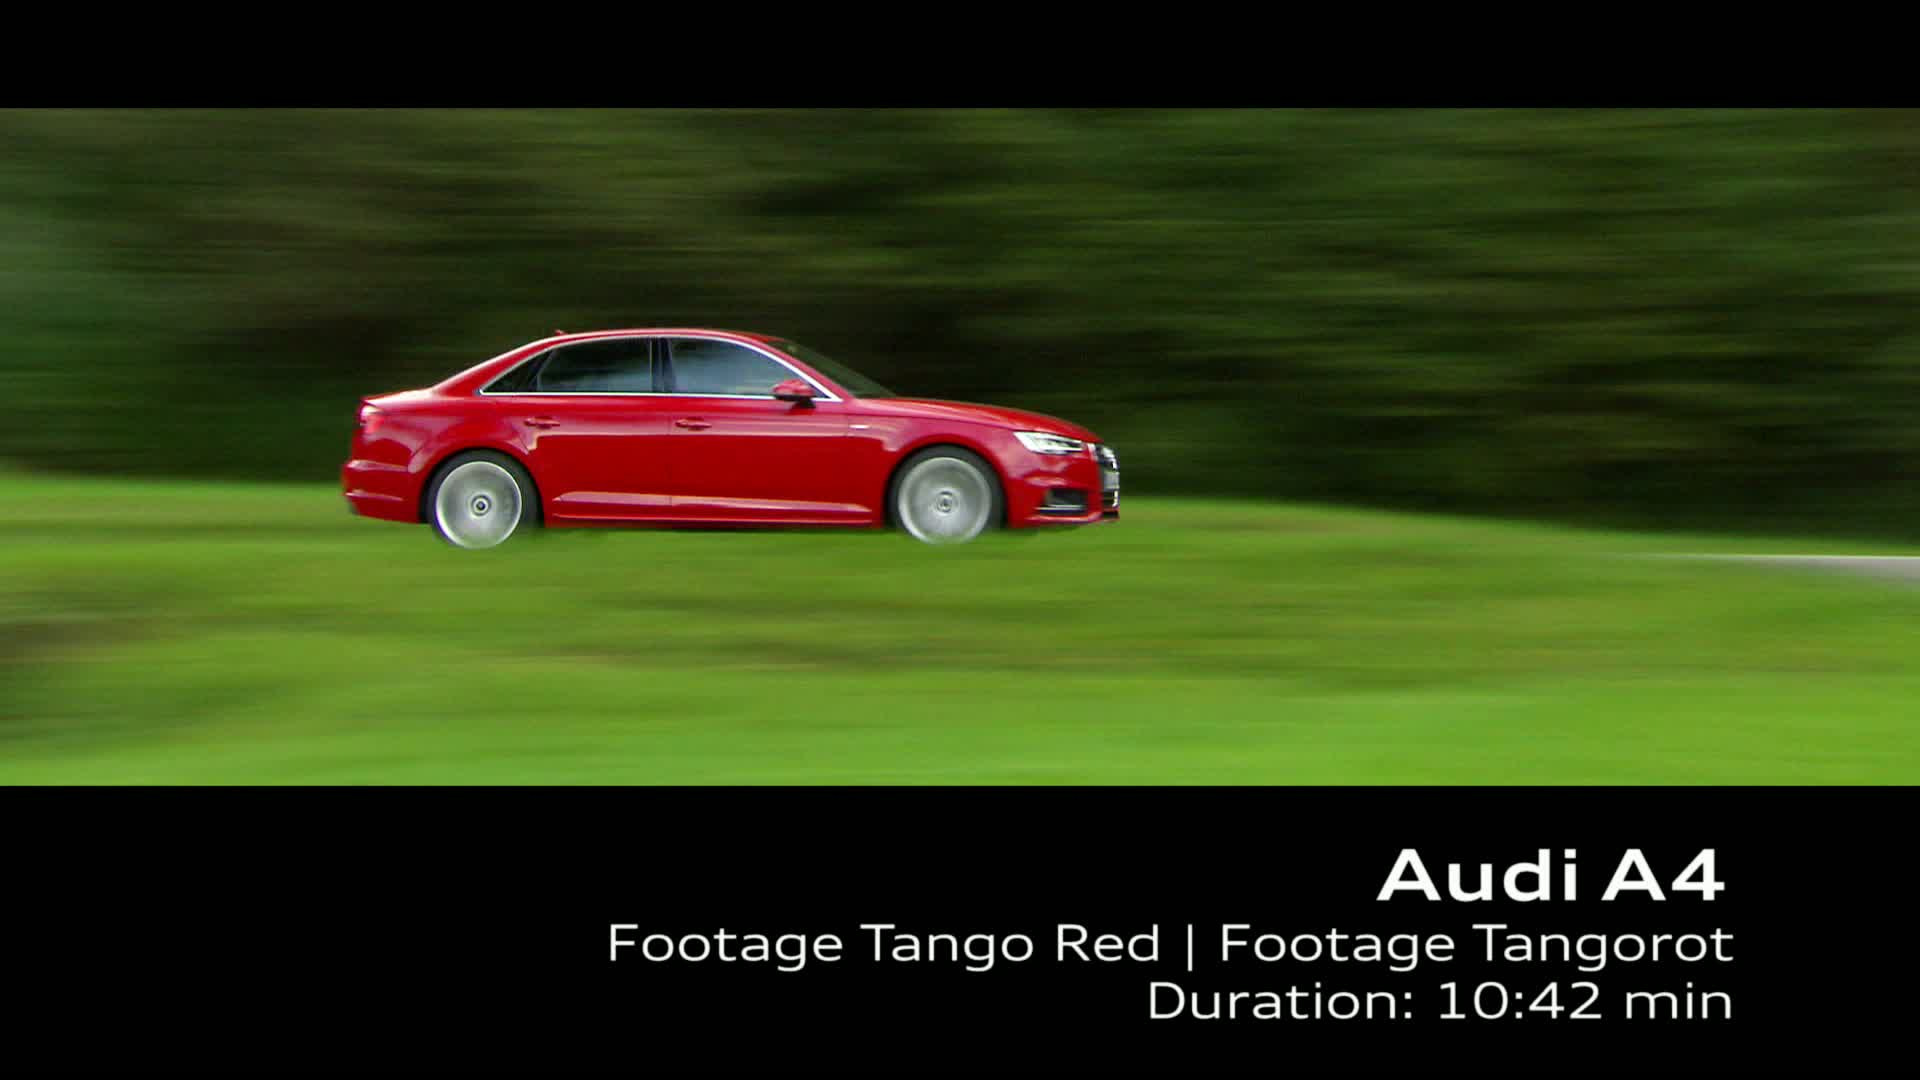 Audi A4 Sedan - Footage Tango Red